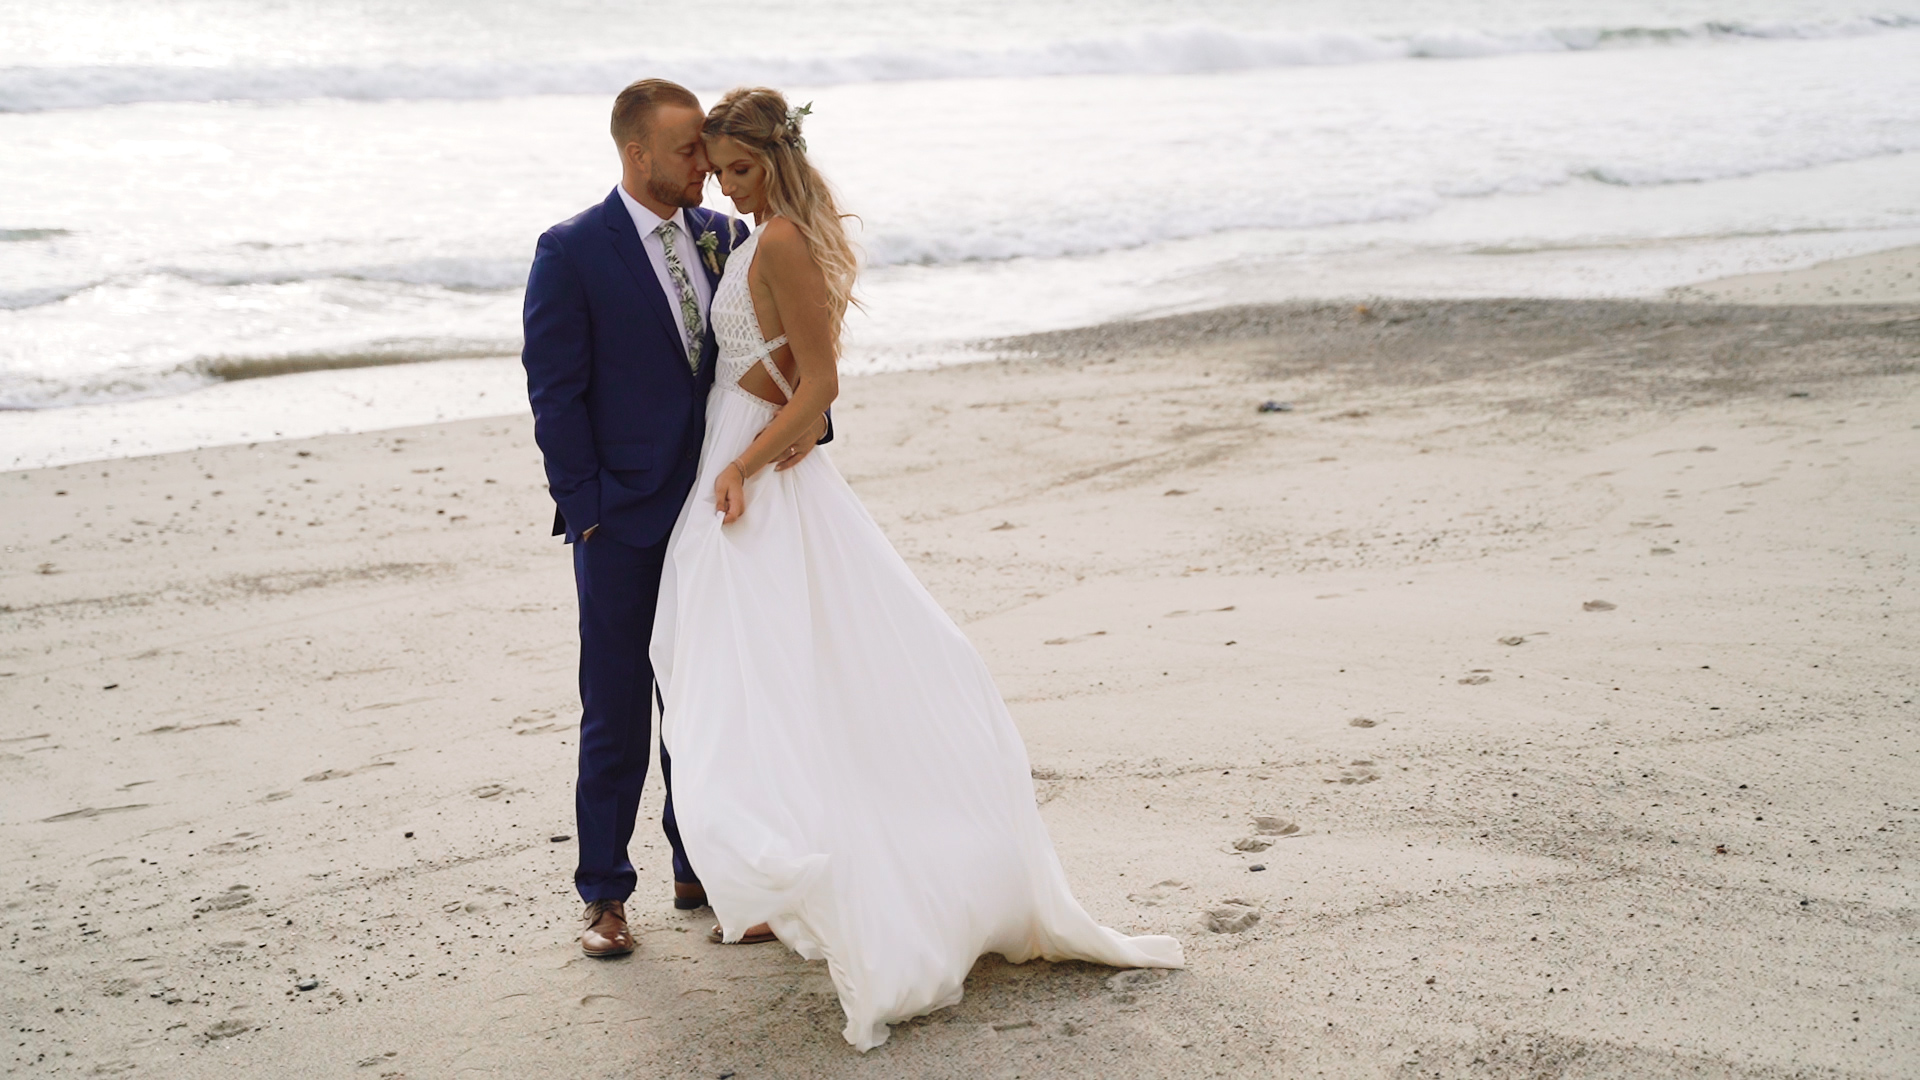 Quinn + Trevor | San Clemente, California | The Casino